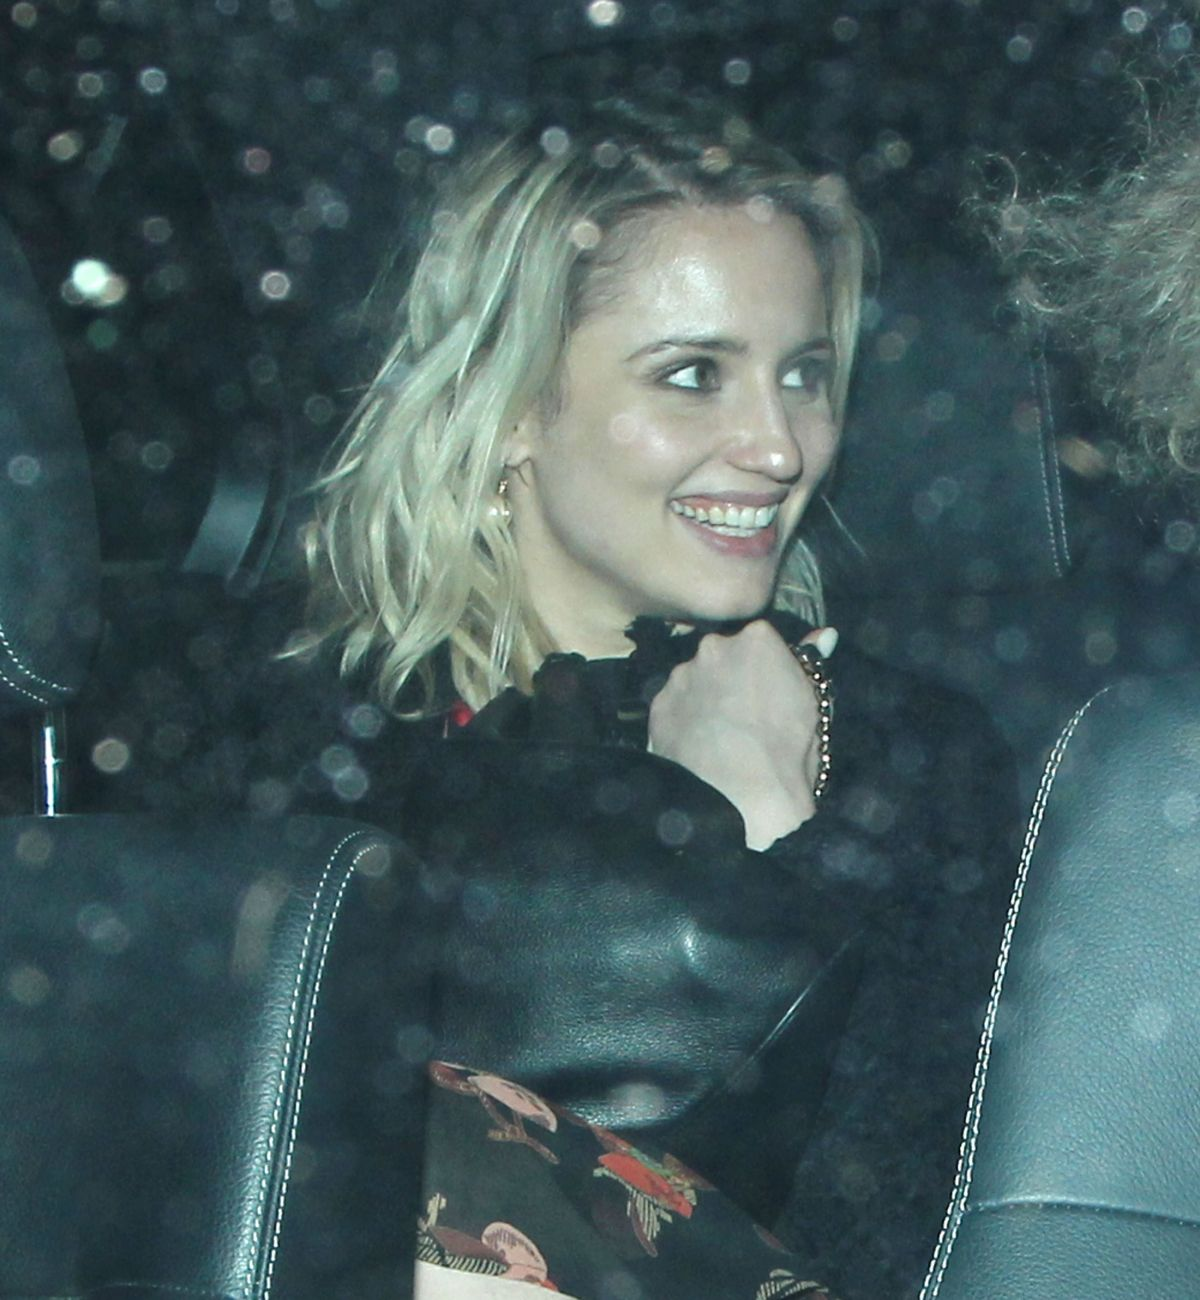 DIANNA AGRON at Chiltern Firehouse in London 06/26/2015